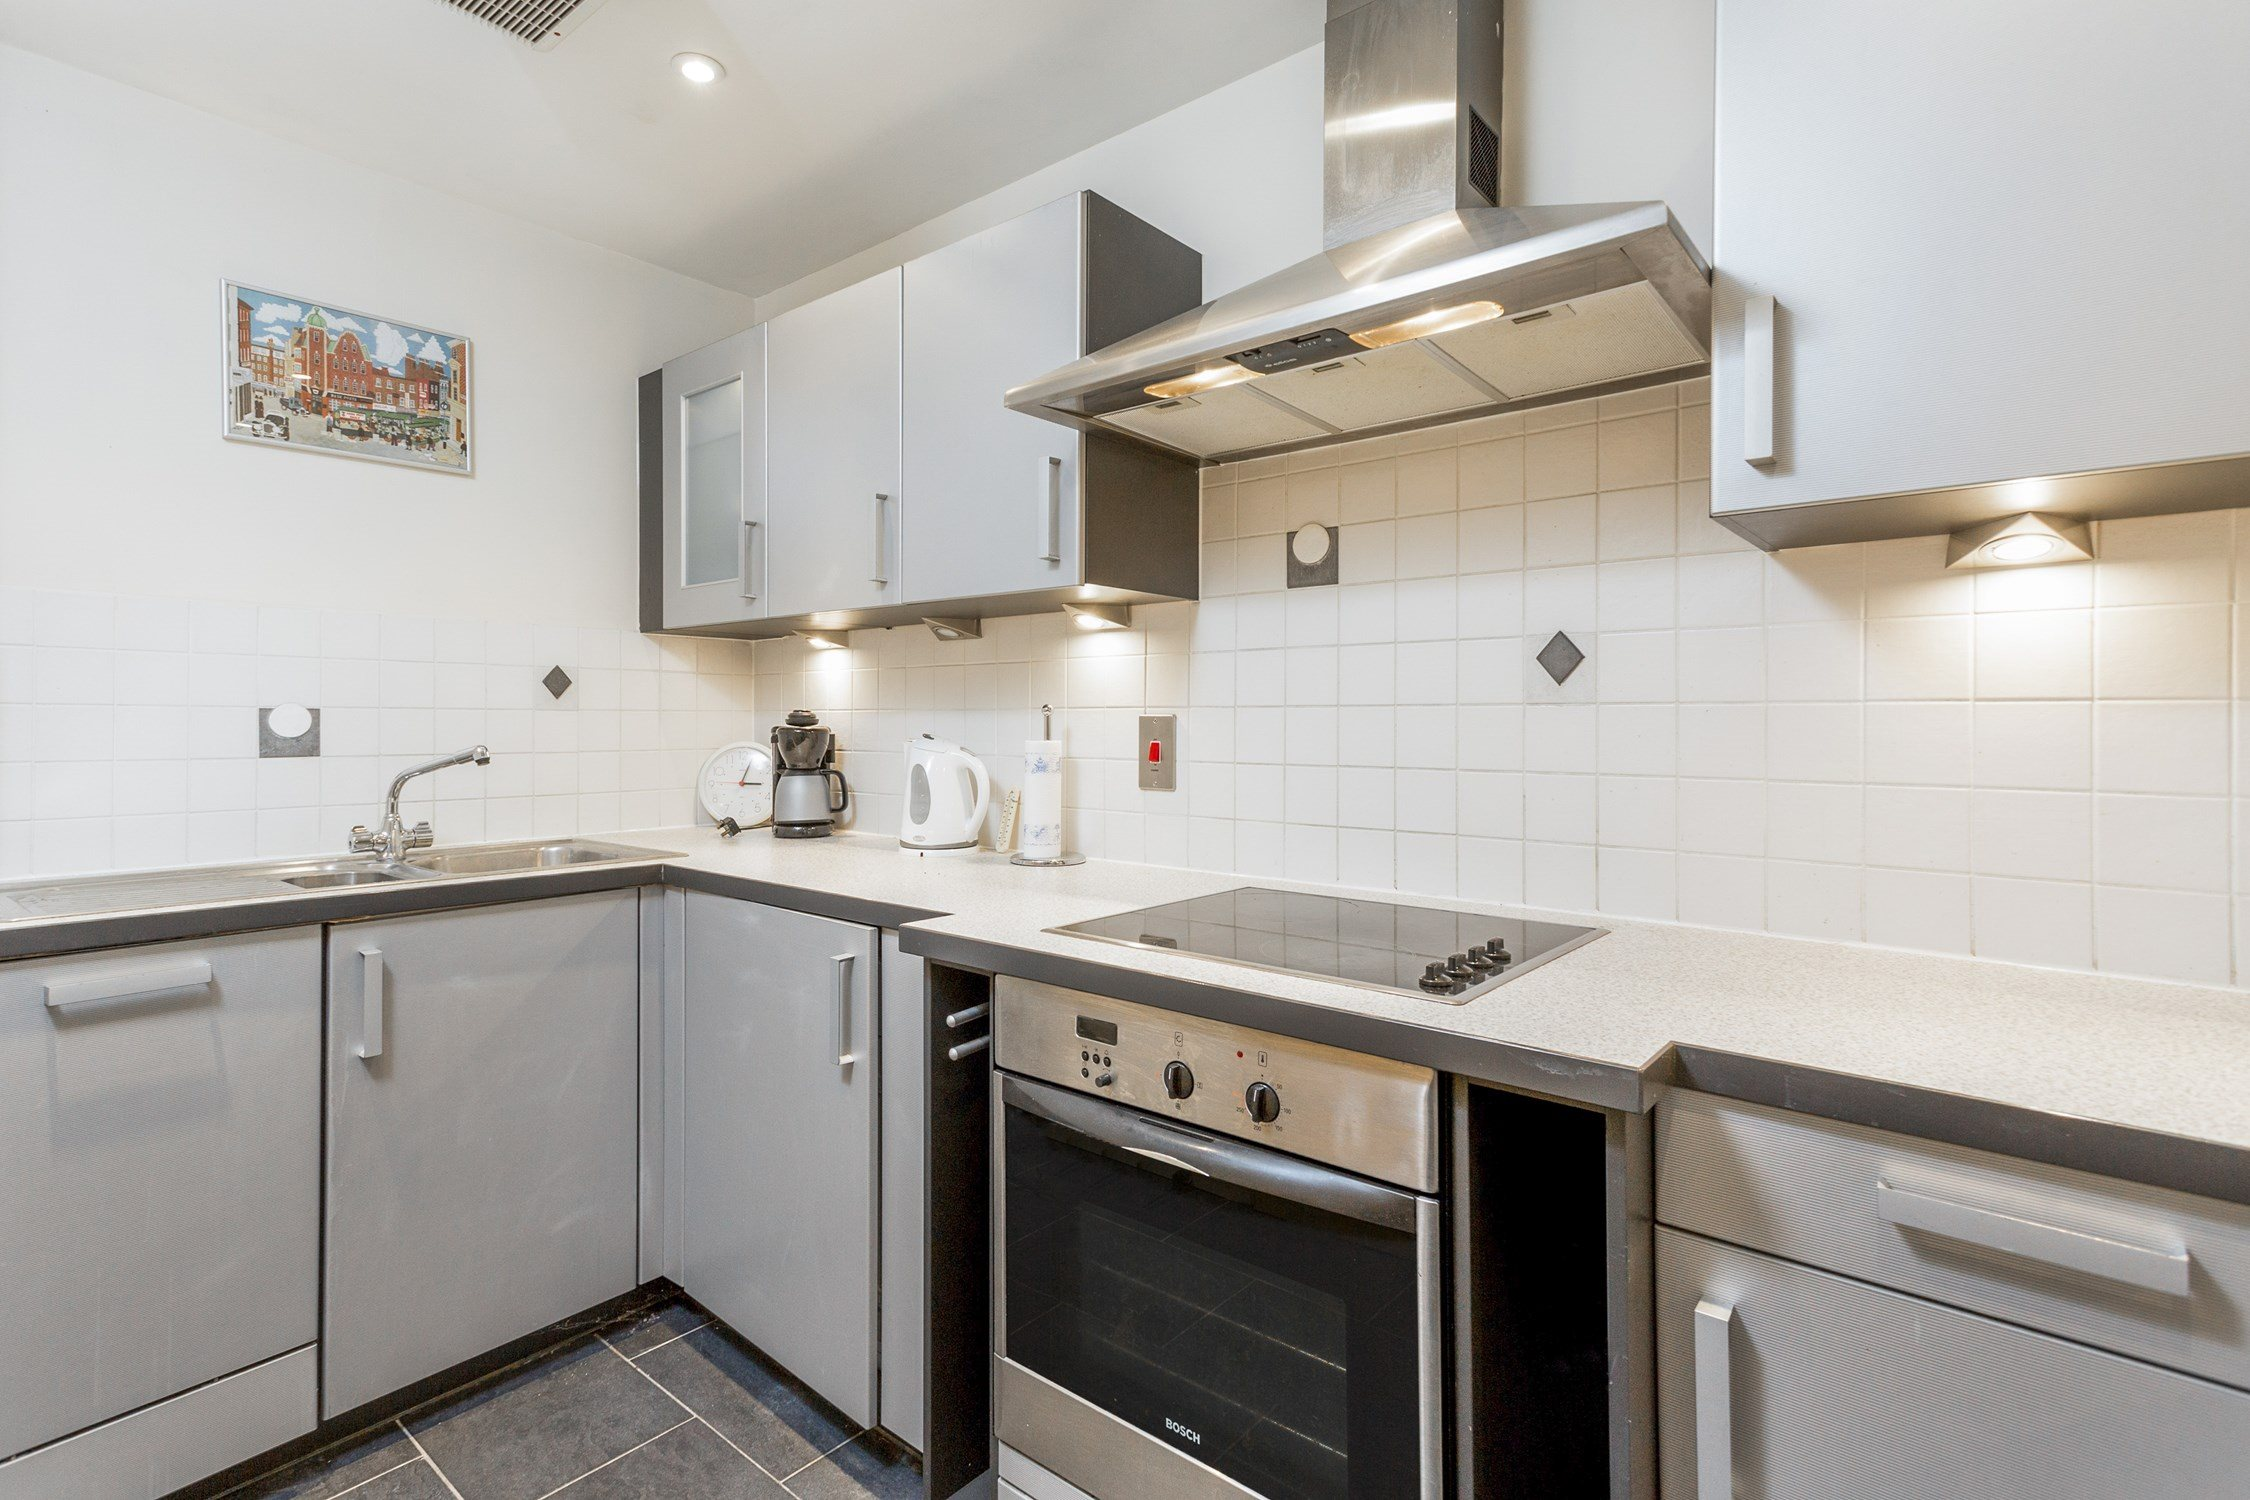 Portico 2 bedroom flat recently sold in dulwich for 1 9 terrace road dulwich hill